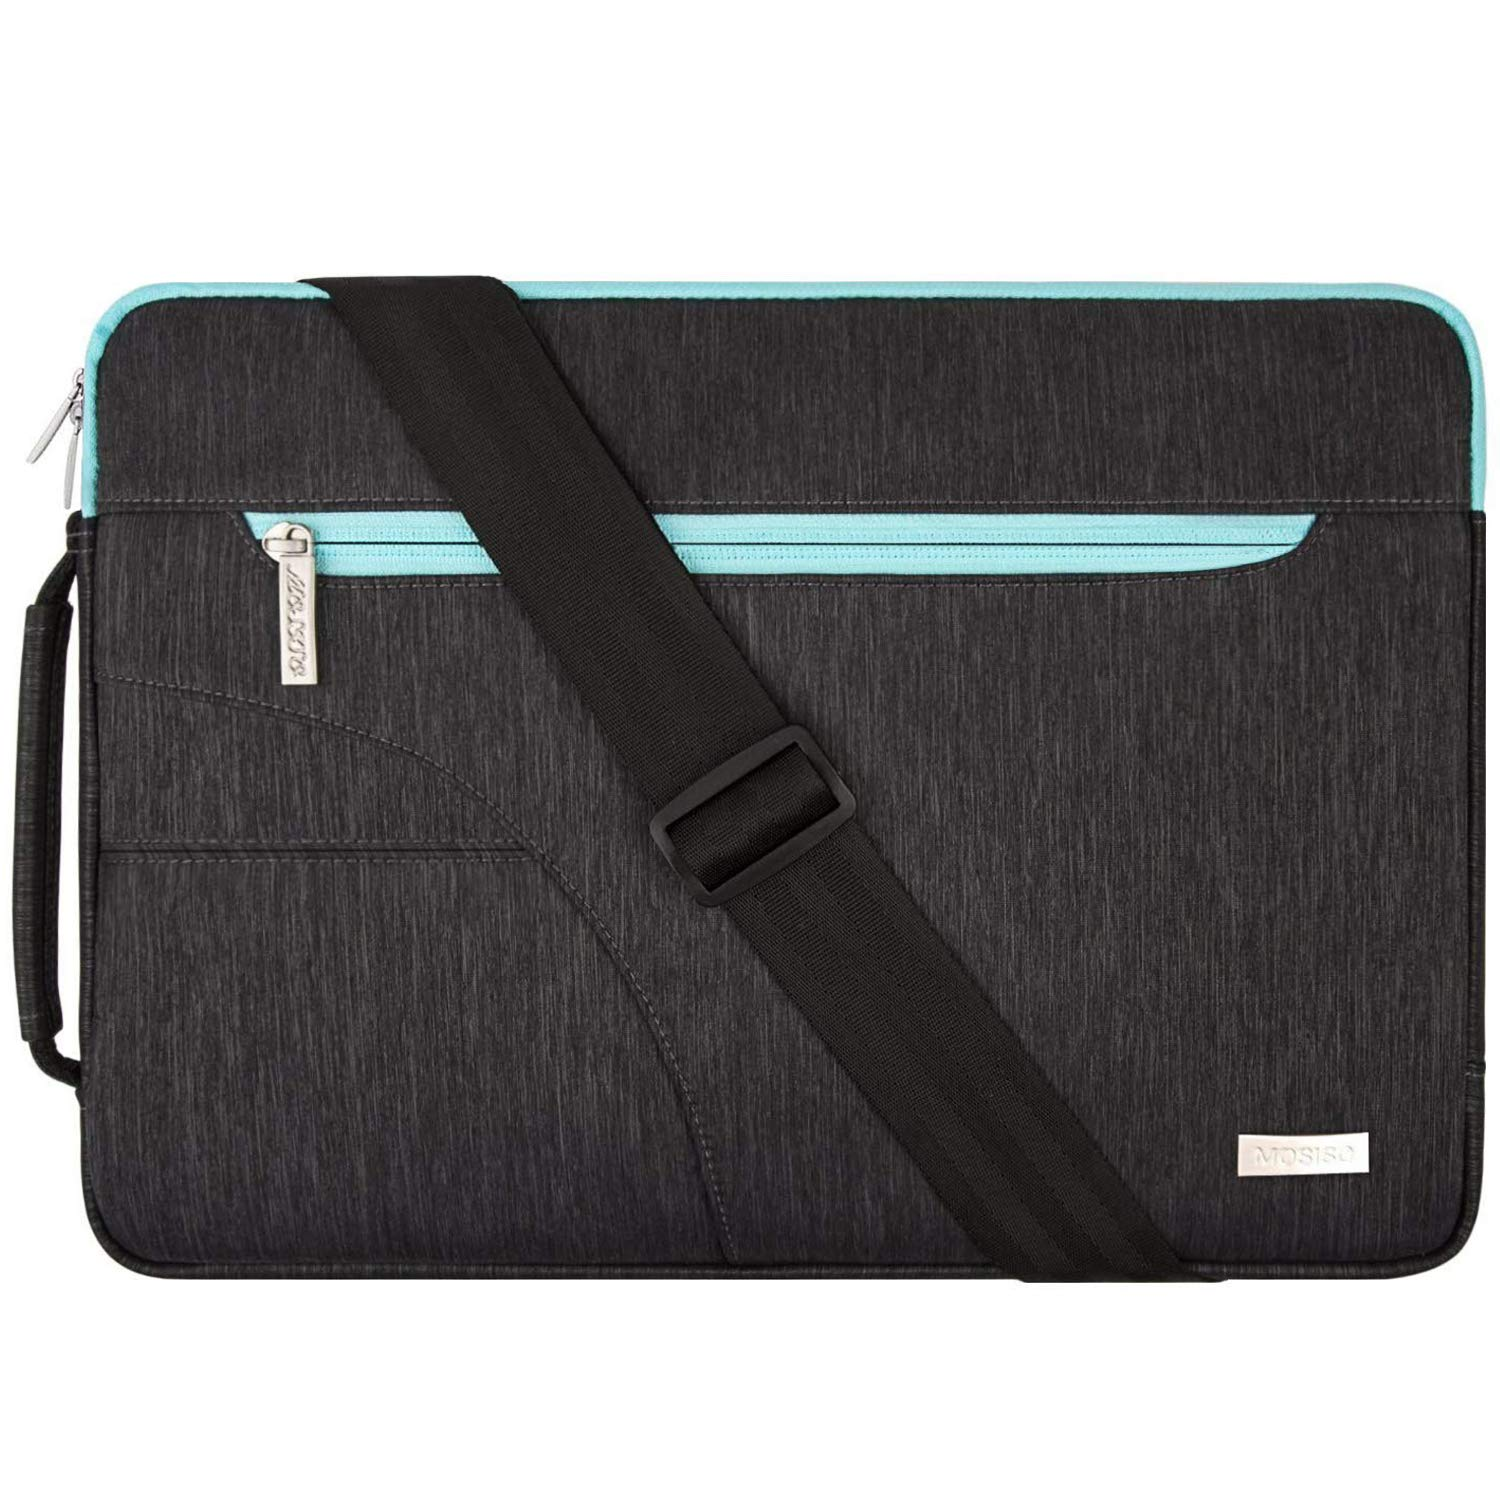 MOSISO Laptop Shoulder Bag Compatible with 13-13.3 inch MacBook Pro, MacBook Air, Notebook Computer, Polyester Briefcase Sleeve with Side Handle, Black & Hot Blue